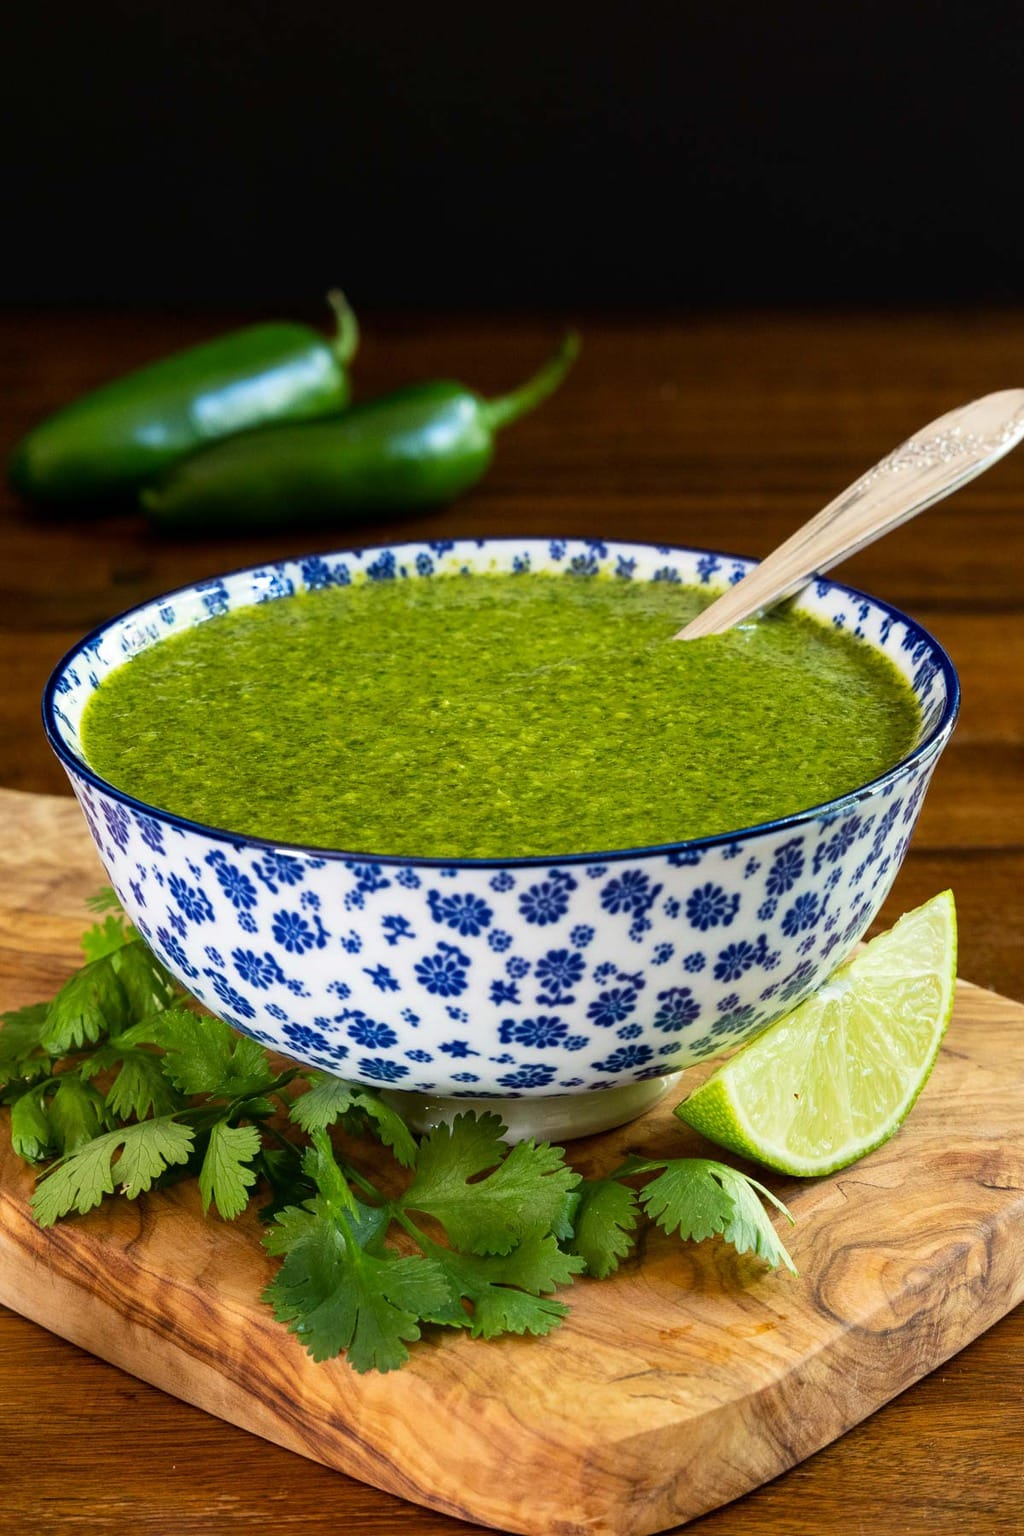 Vertical closeup photo of a serving bowl of Mexican Cilantro Sauce on a wood cutting board surrounded by fresh cilantro leaves and lime wedges.